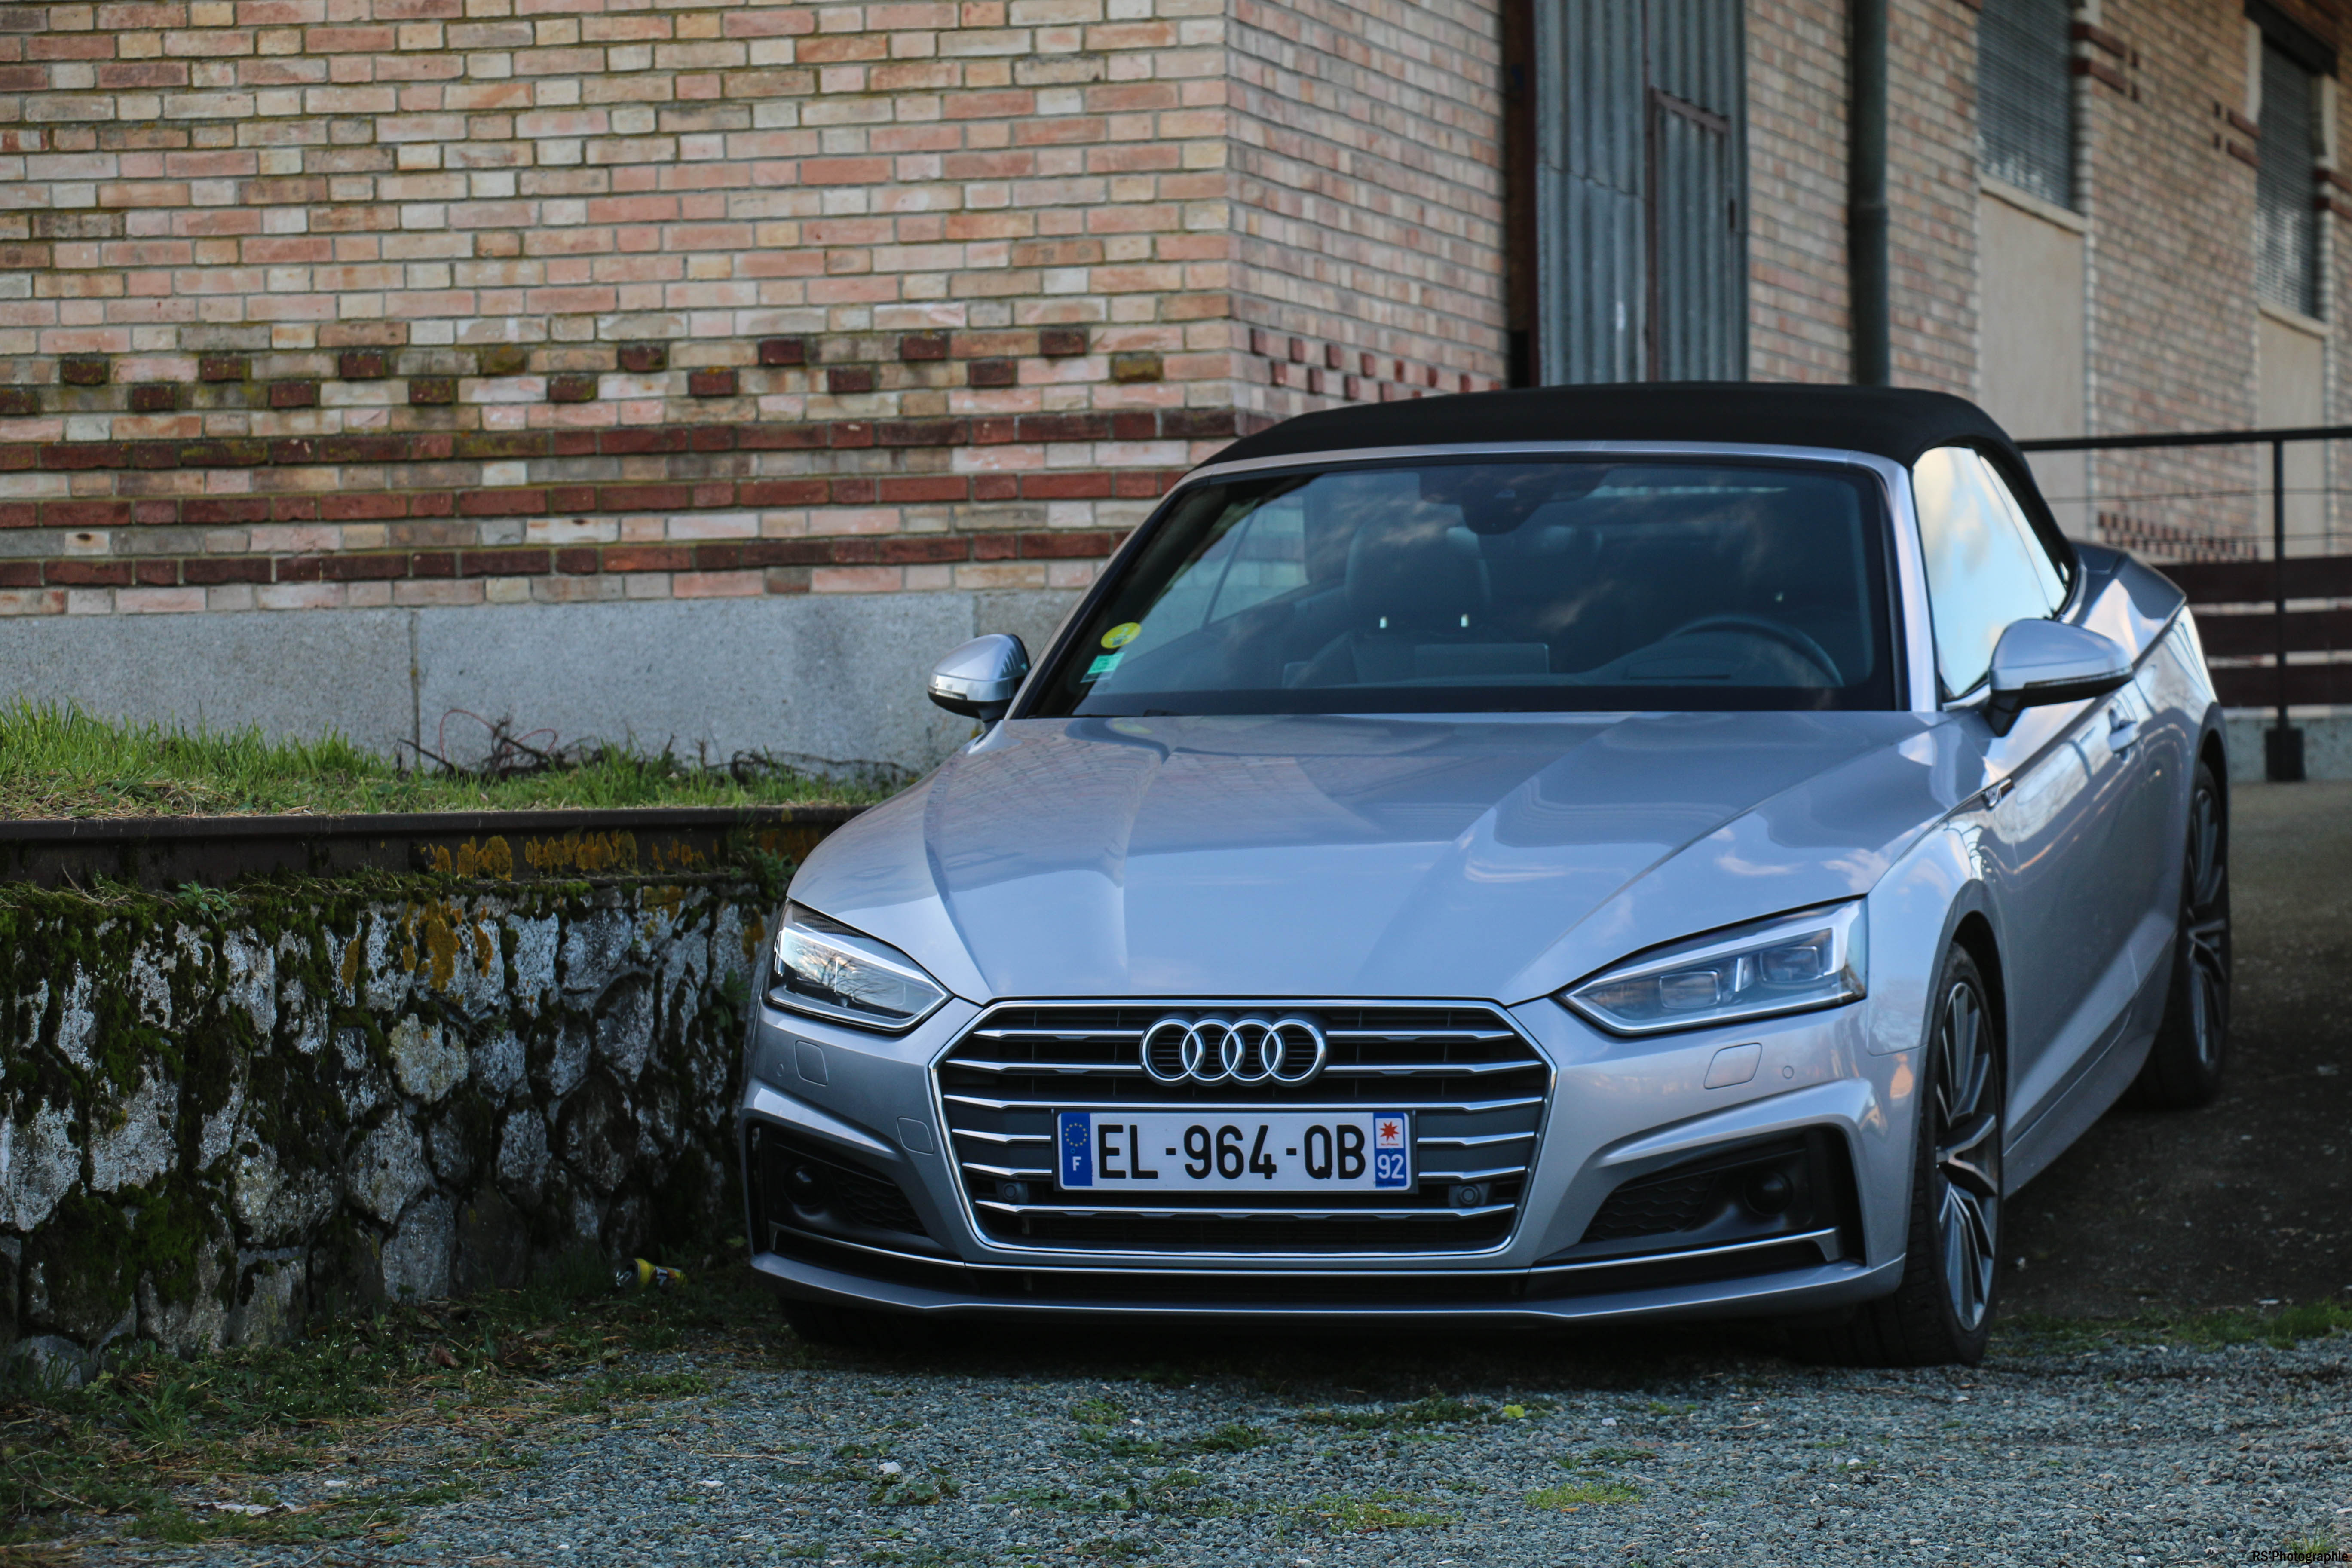 audia5cab40-audi-a5-190-tdi-cabriolet-avant-front-Arnaud Demasier-RSPhotographie